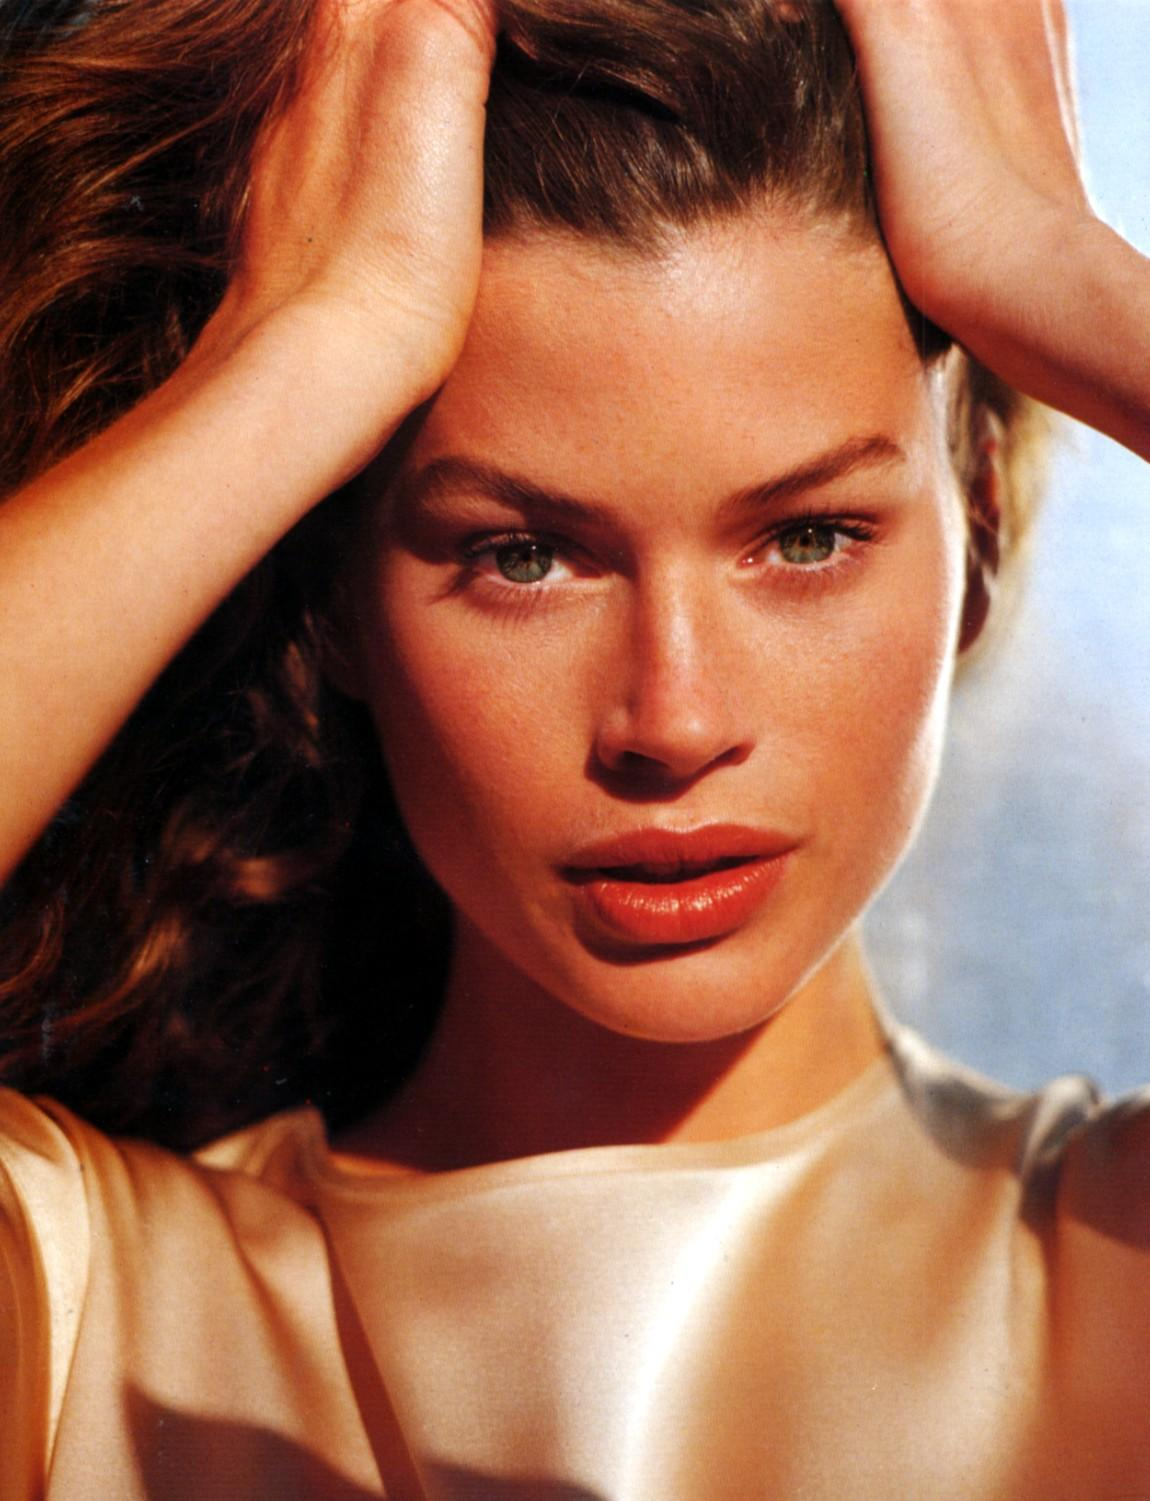 Hacked Carre Otis nude photos 2019